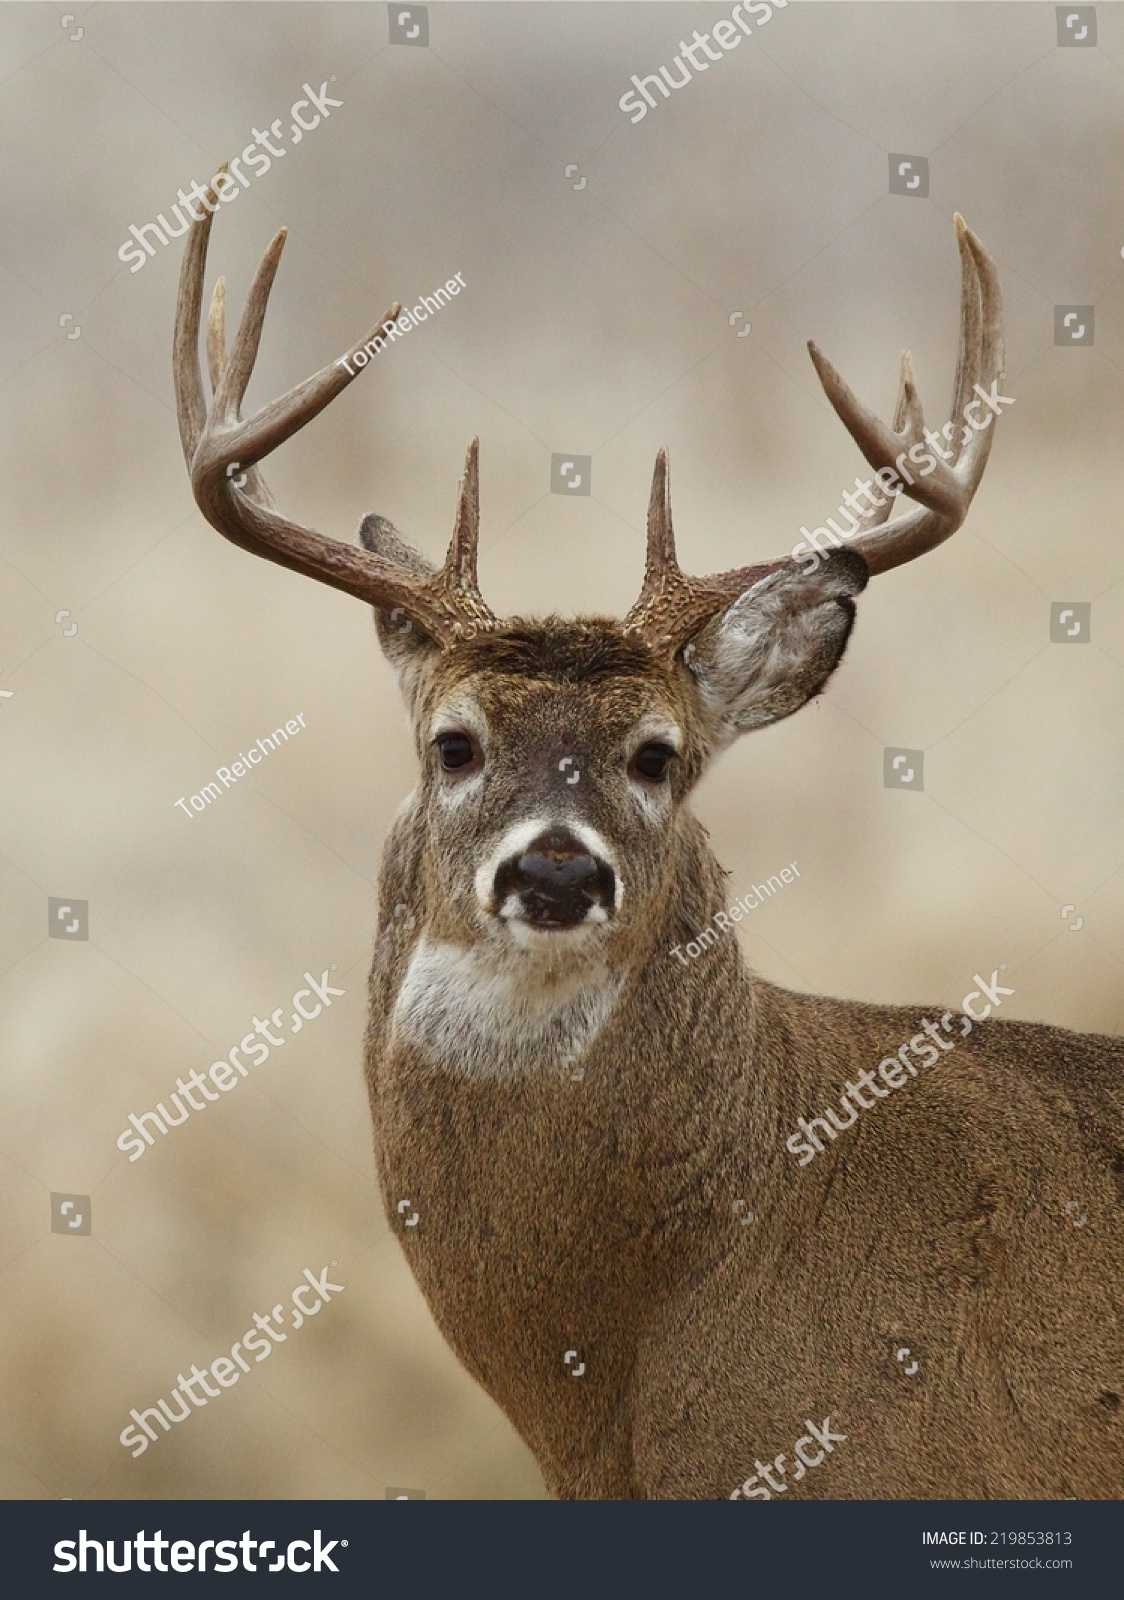 Big Whitetail Buck - Highly Detailed Portrait Of A Trophy Class White-Tailed Deer White Tail Deer Hunting Season In Wisconsin, Minnesota, Michigan ...